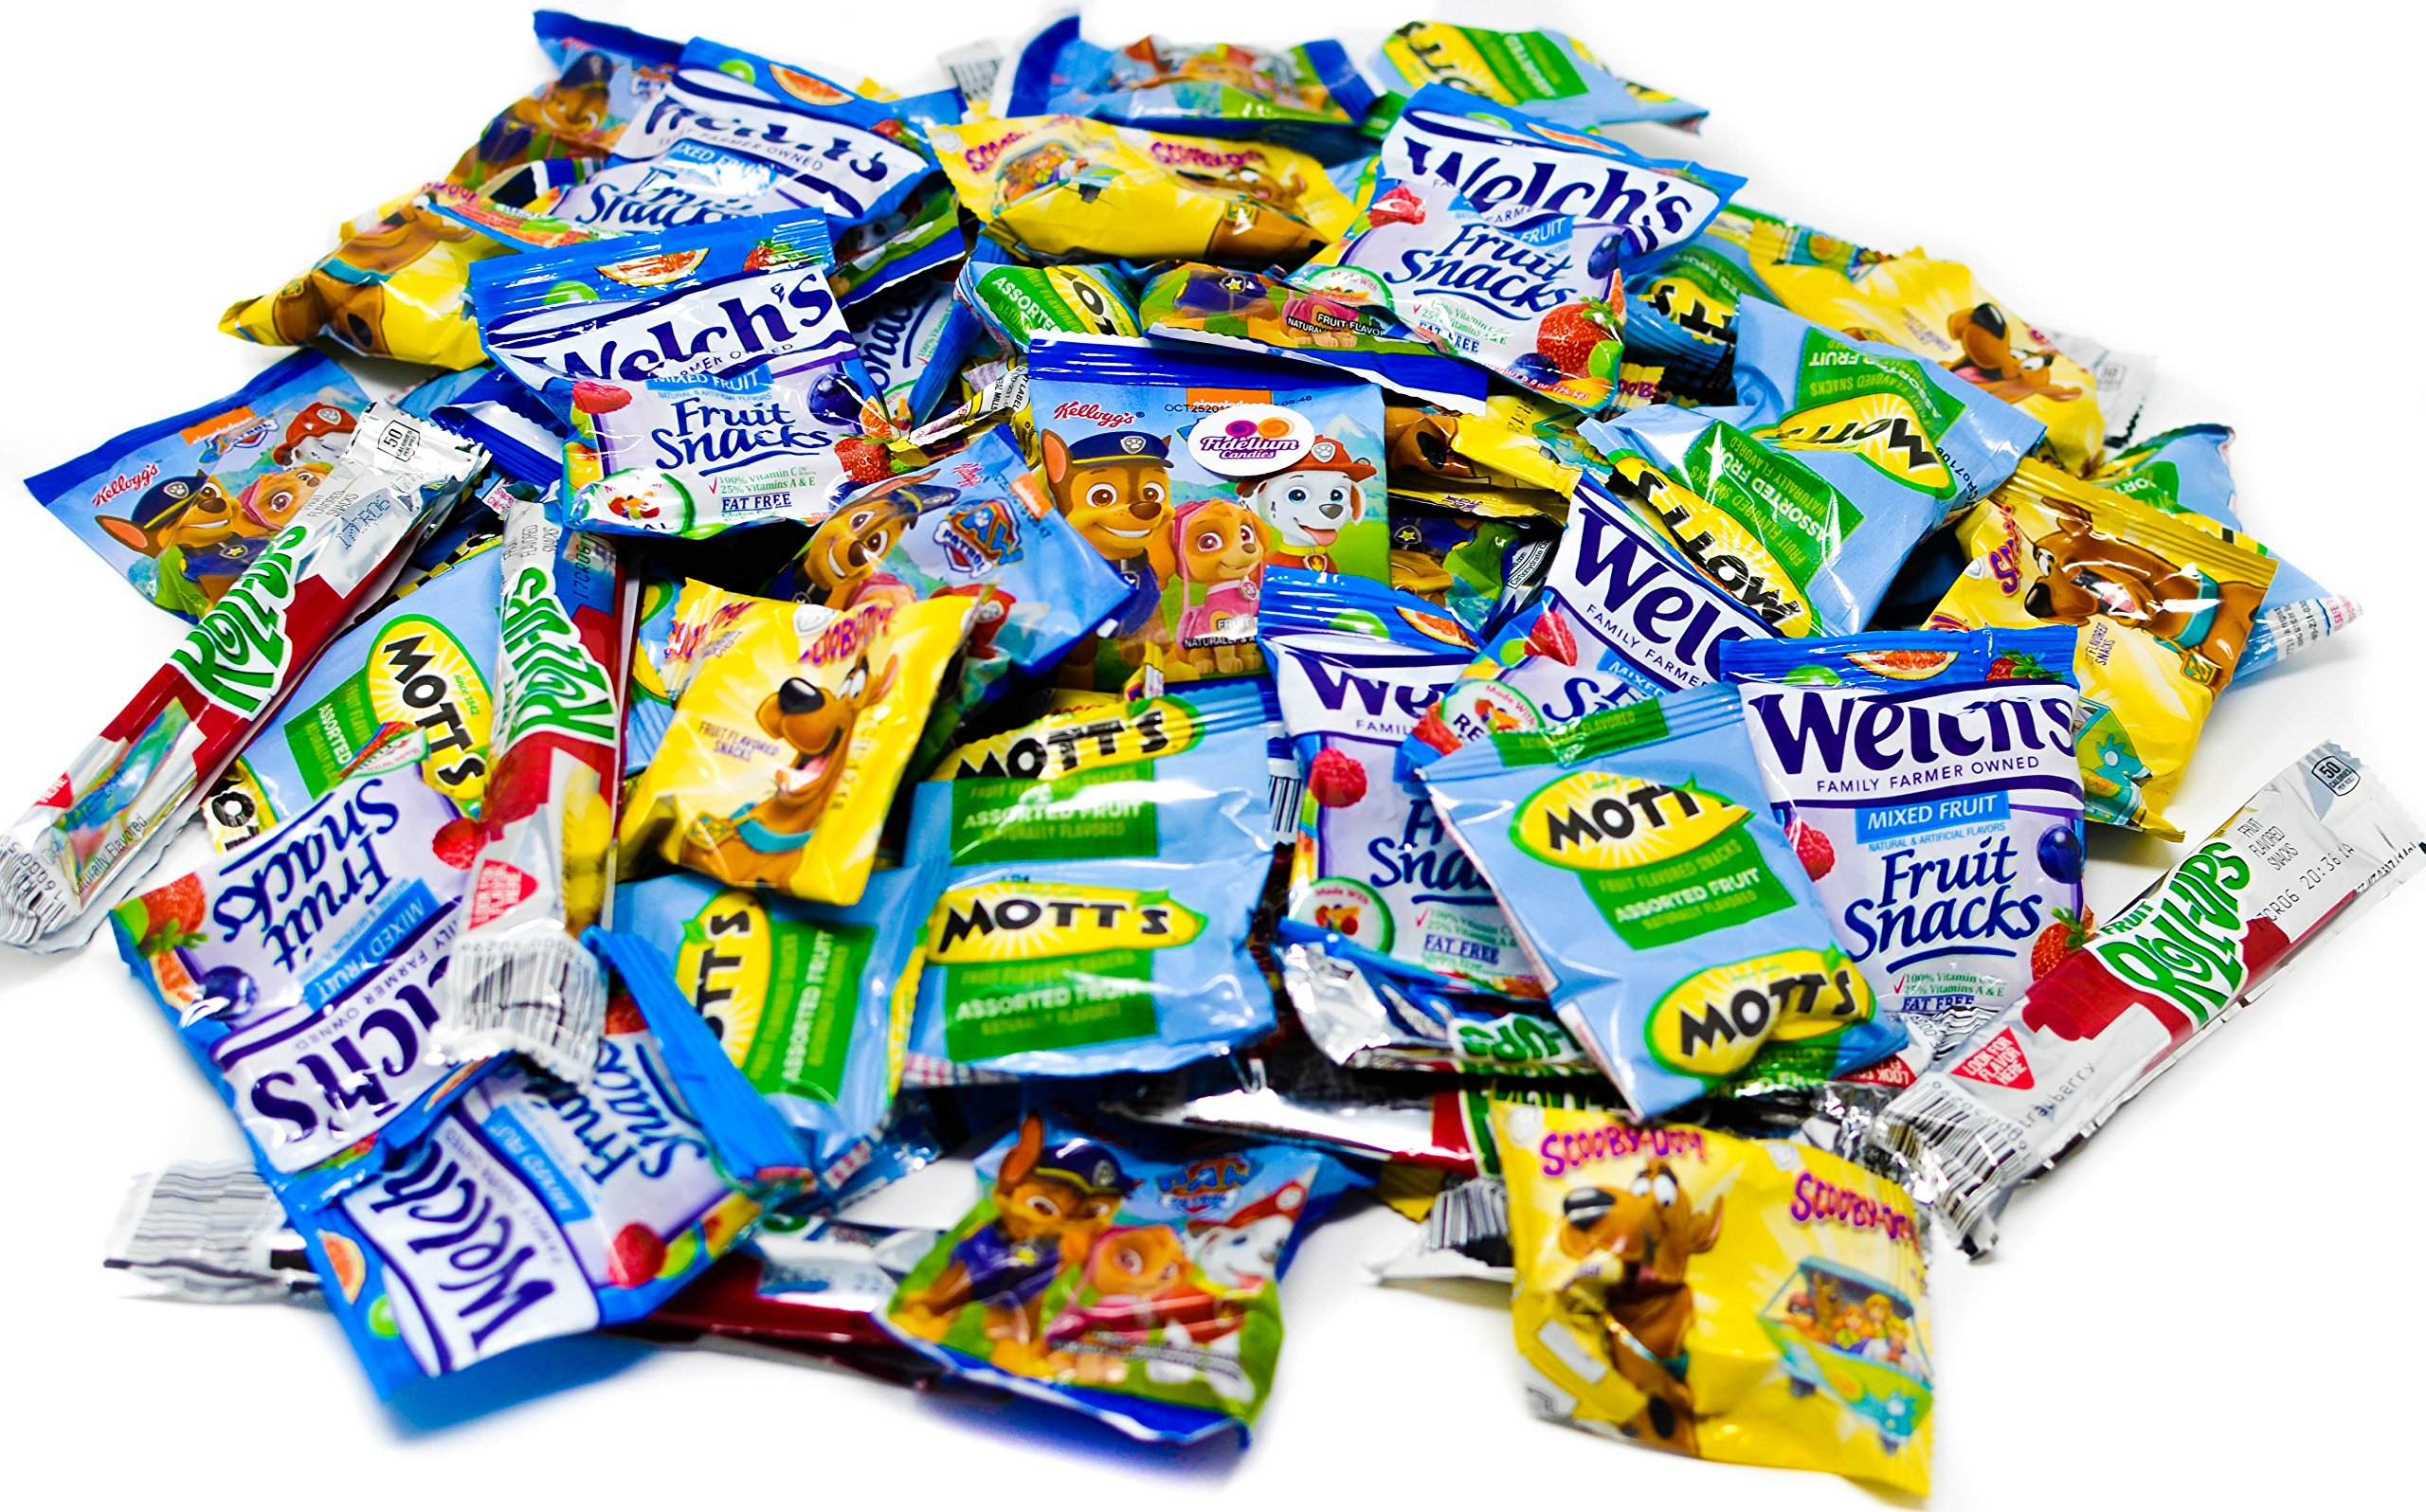 Fruit Snacks Variety Pack, 68 Count Mixed Fruit Snacks Assortment, Ideal Fruit Snacks For Kids - Fruit Snacks Bundle Includes Mott's, Welch's, Scooby Doo, Paw Patrol, and Fruit Rollups